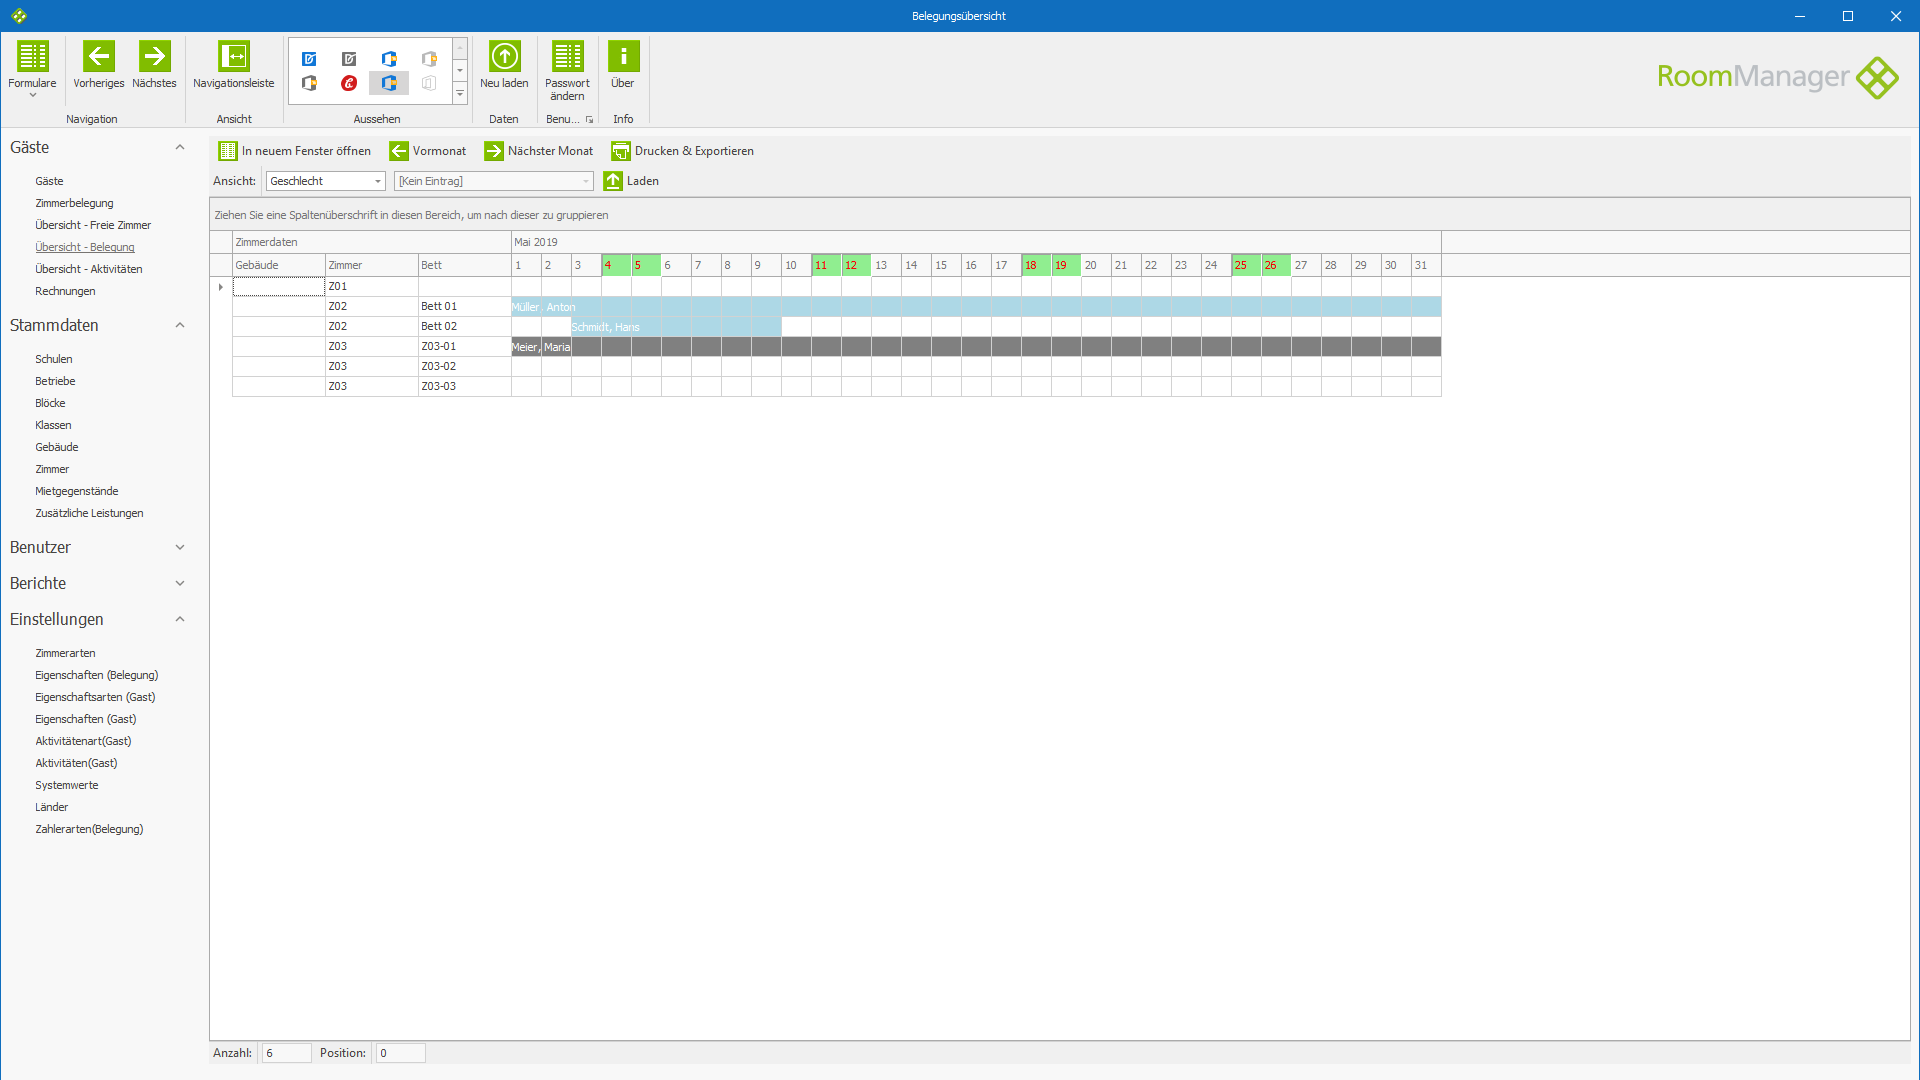 Wohnheimverwaltung -  Hospitality Management - RoomManager - Software Screenshot #1